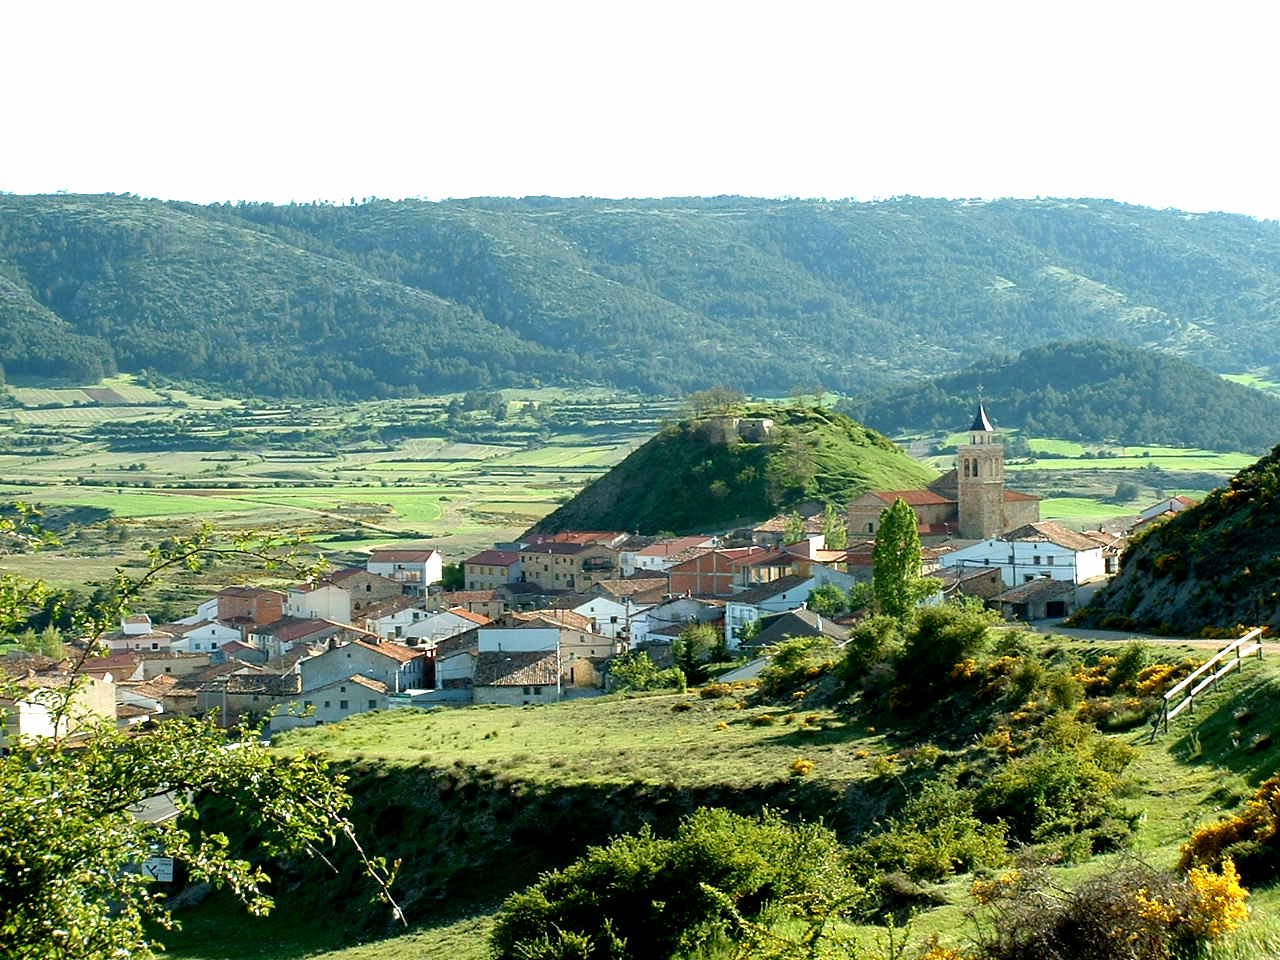 Vista de Frías de Albarracín